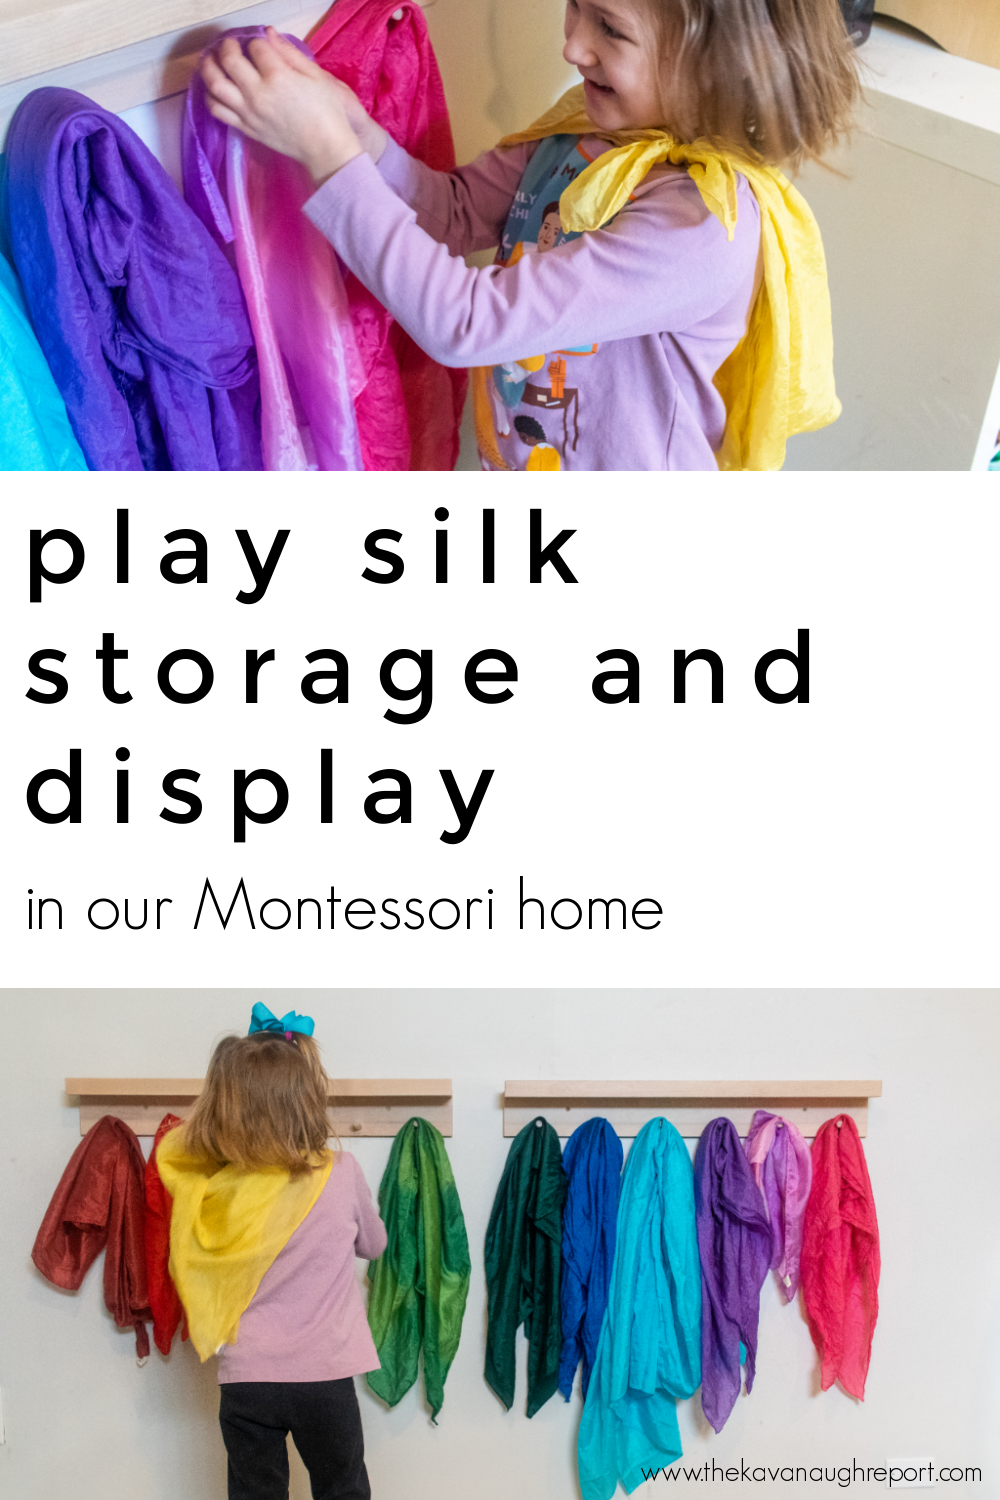 Storage and display solutions for play silks in a Montessori home. Easy to use ideas to help make this popular toy accessible and organized.